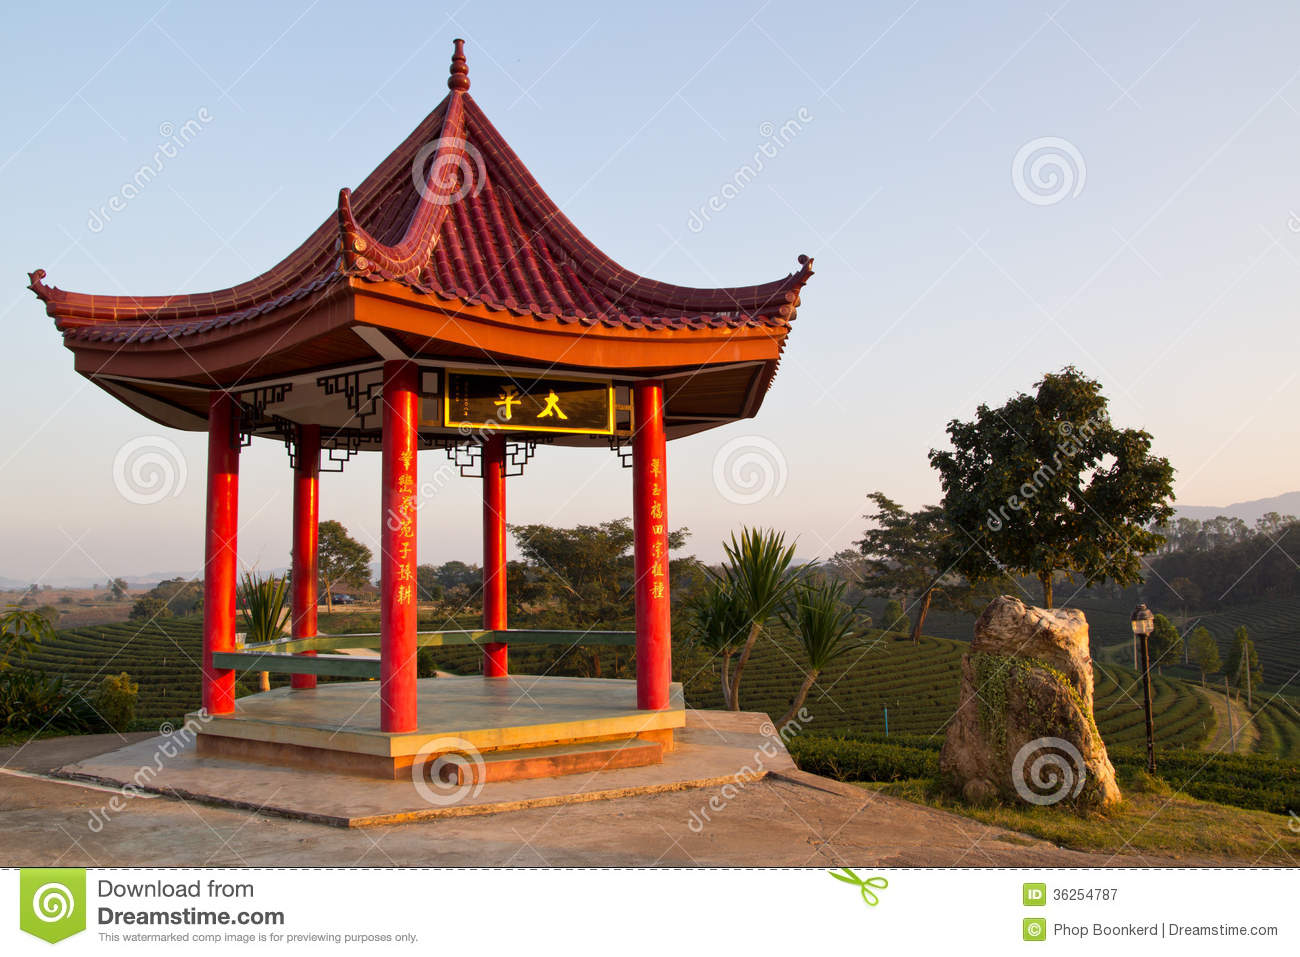 Chinese Pavilion Royalty Free Stock Photography - Image: 36254787